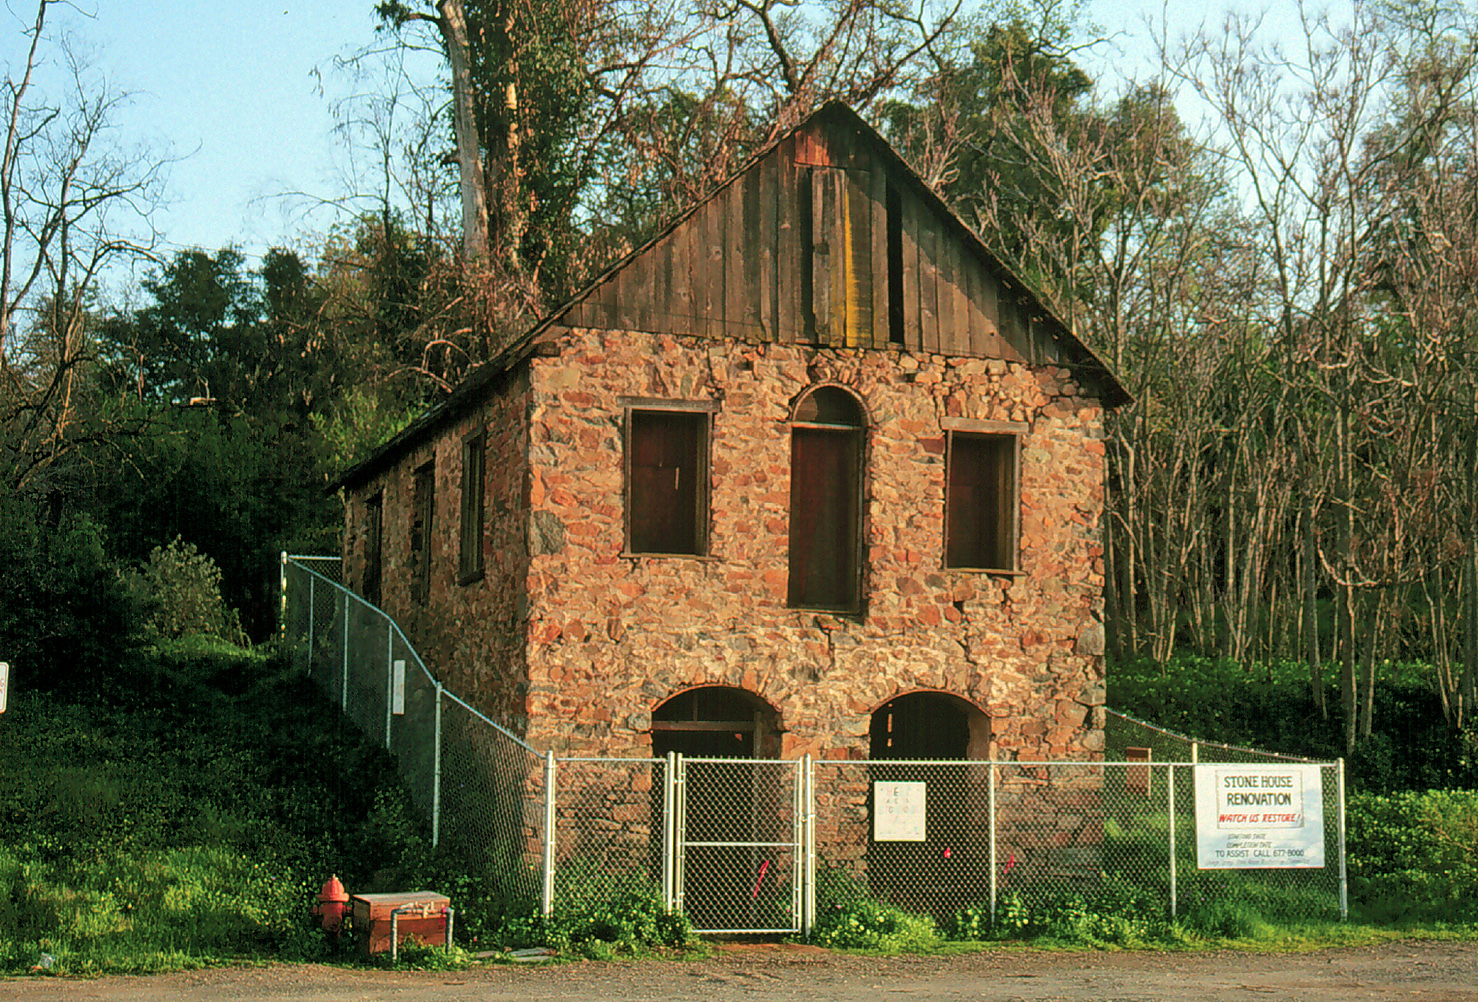 Shingle Springs California Phelps Stone Building.jpg